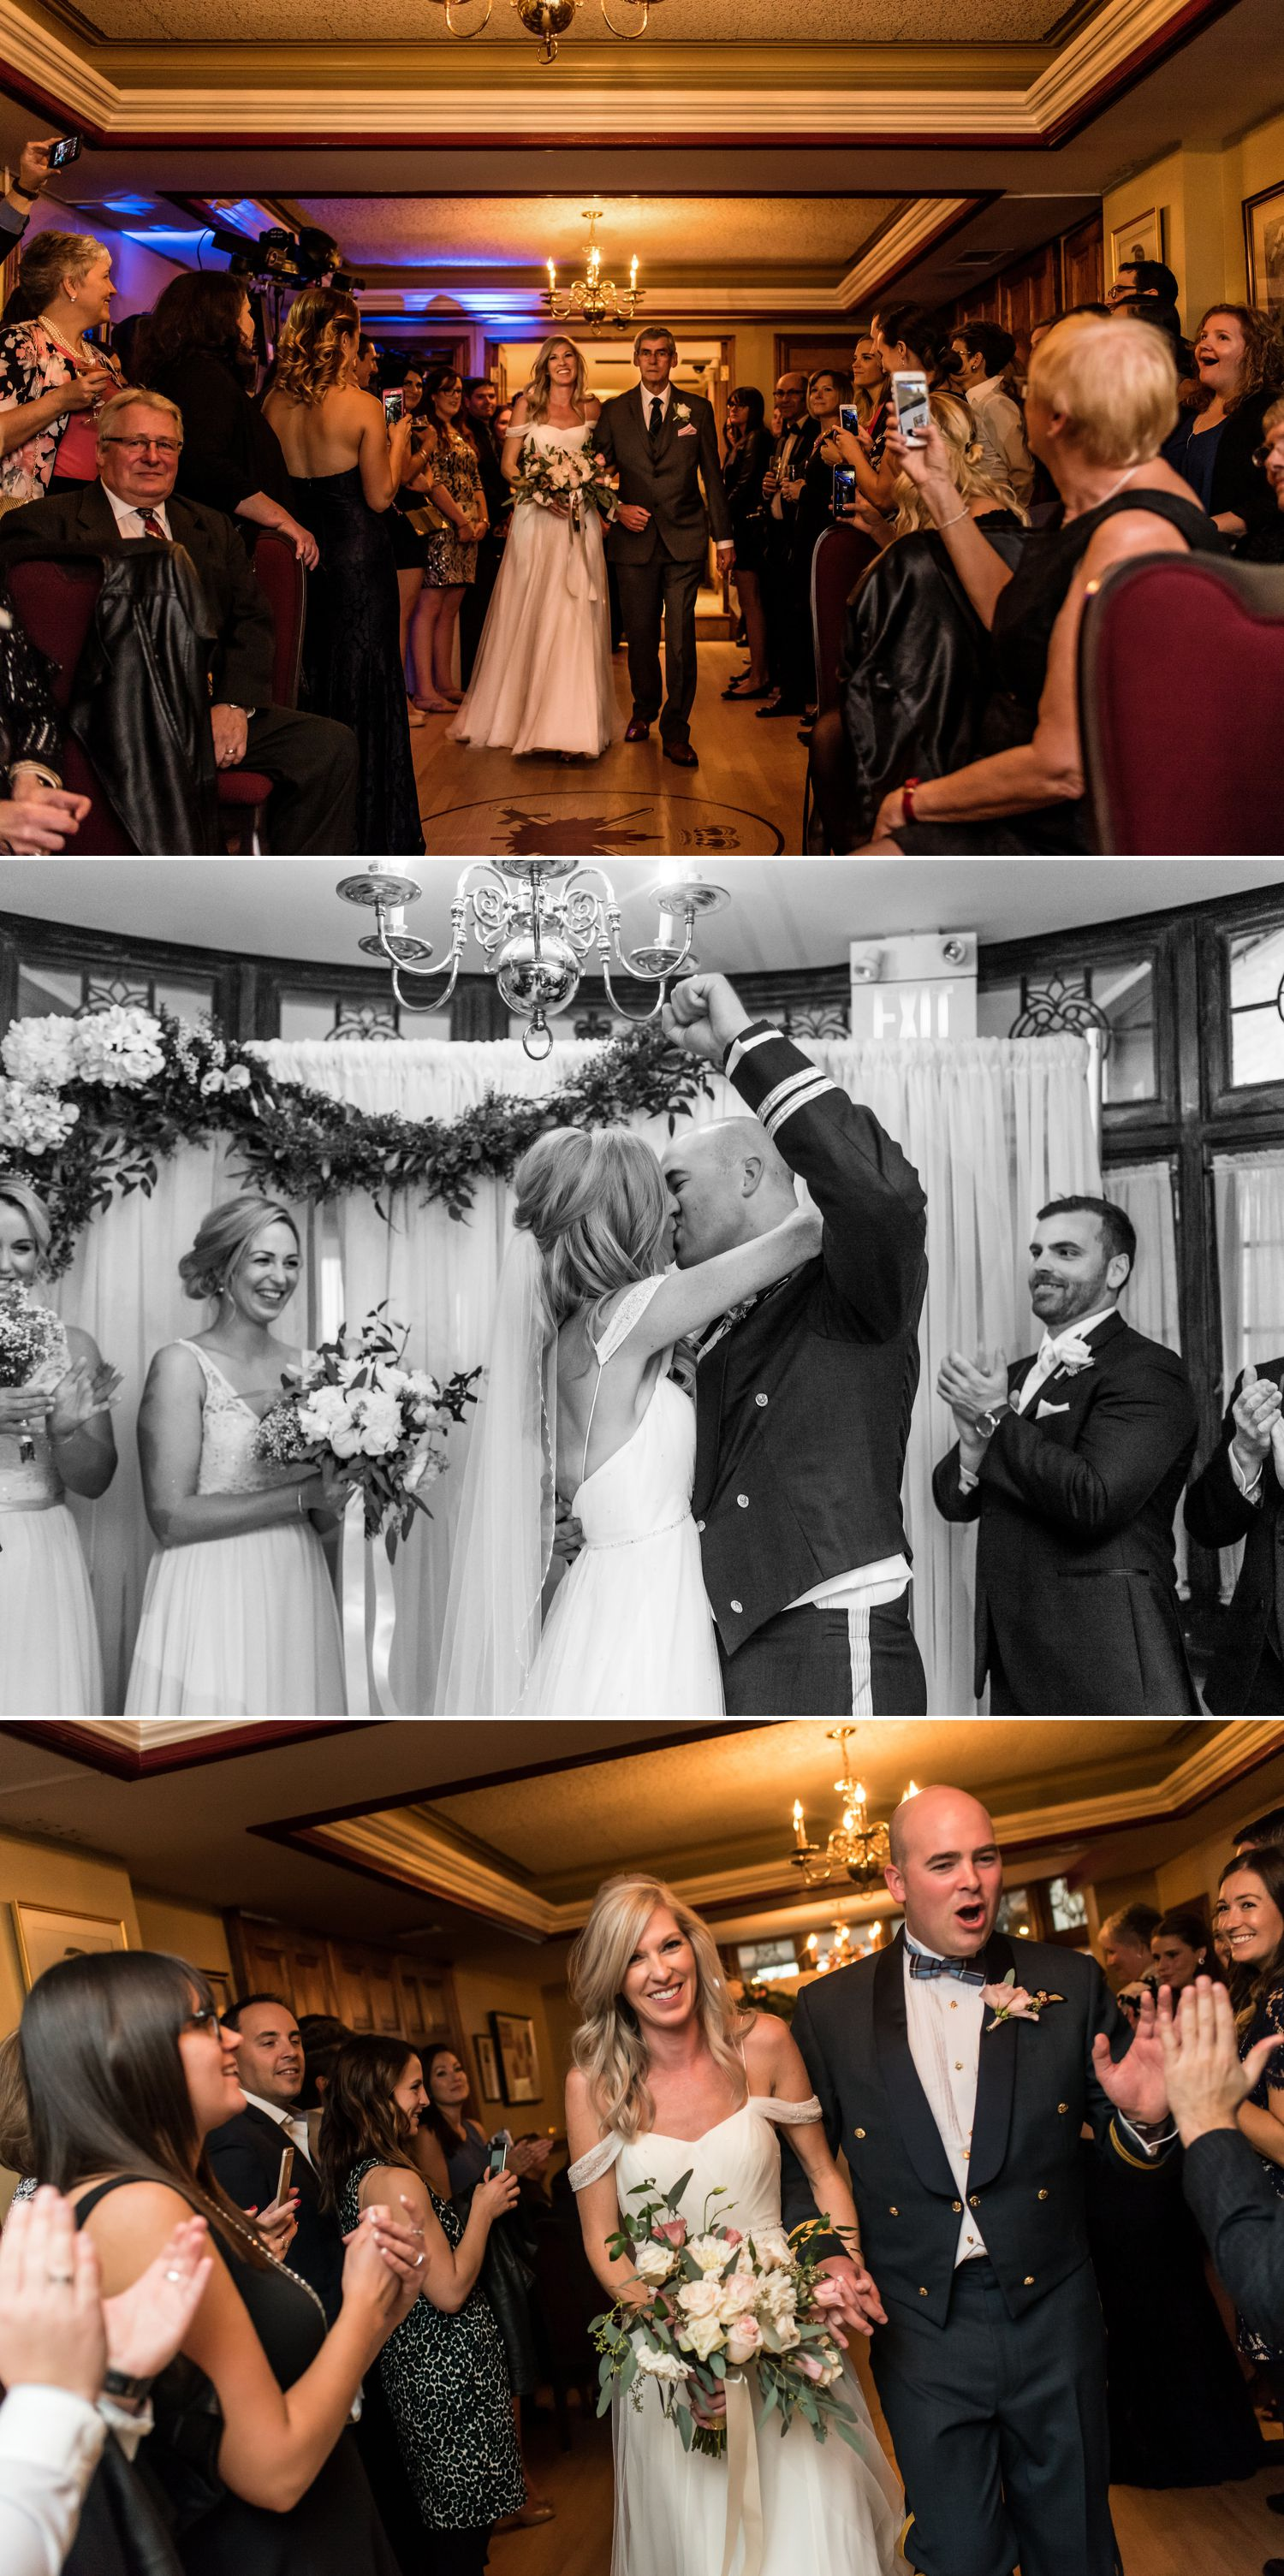 candid moments at an army mess wedding in ottawa ontario